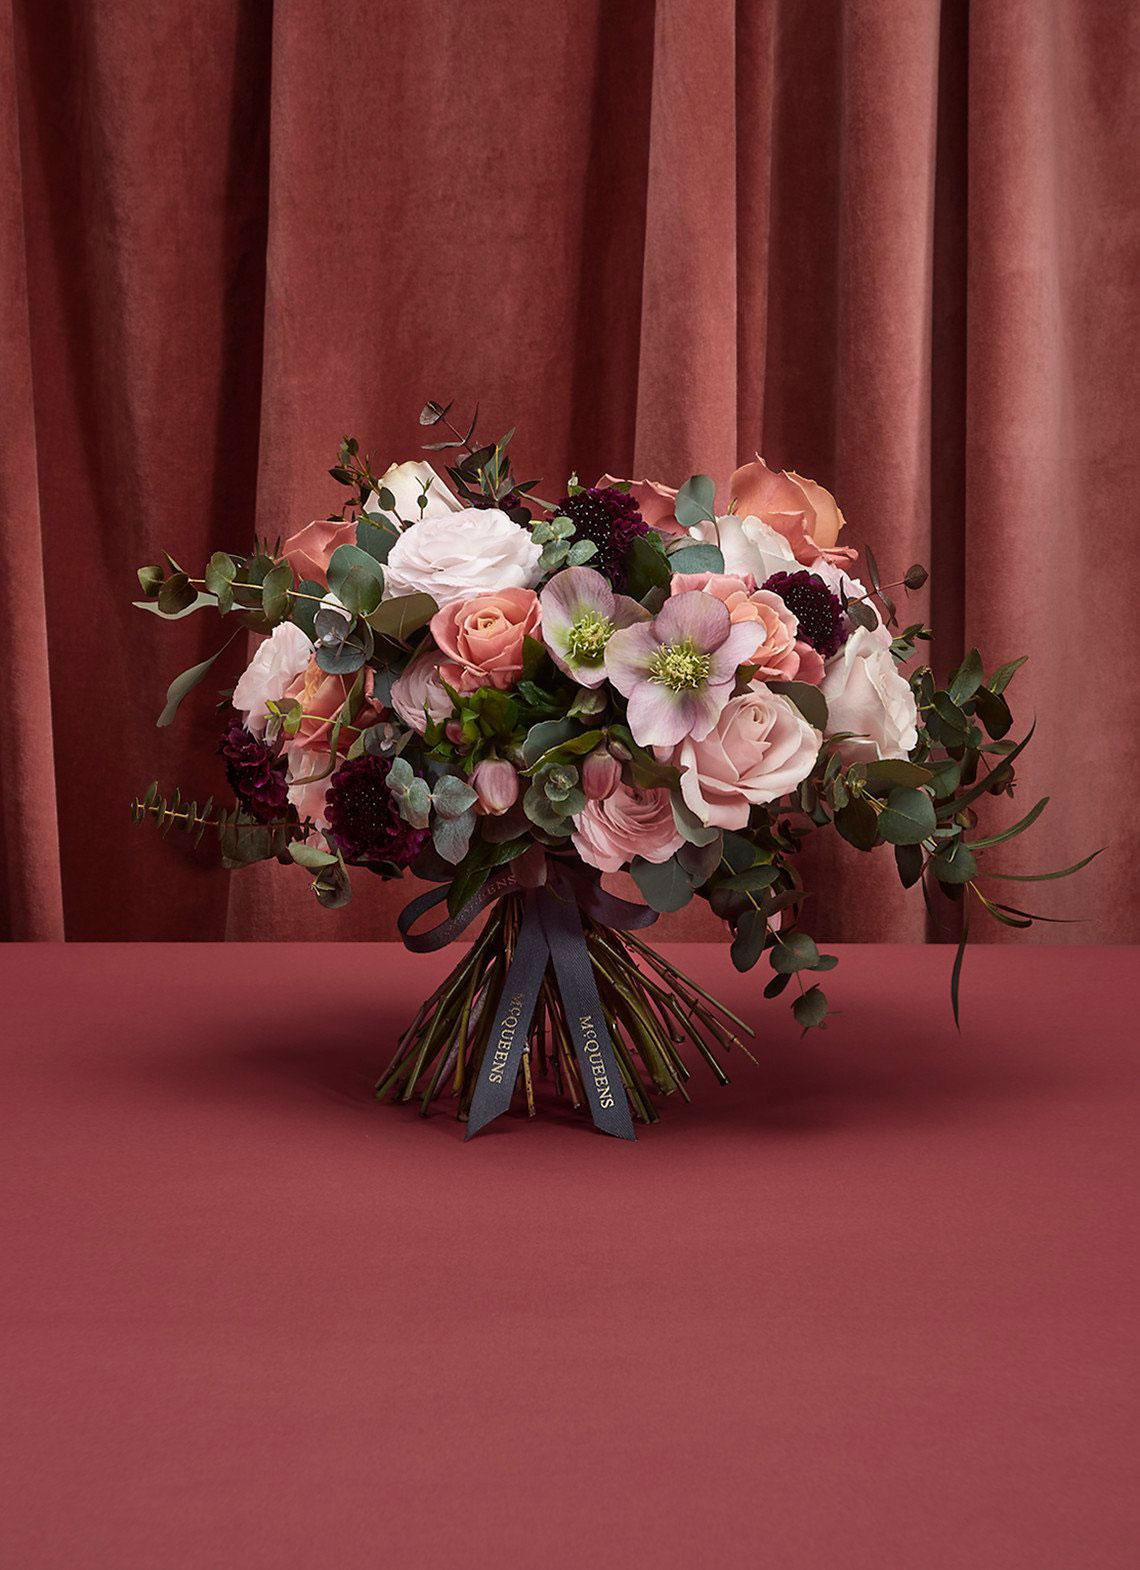 McQueen's flowers of London, Seoul, and New York bouquet of pink and white flowers and green stems against pink background